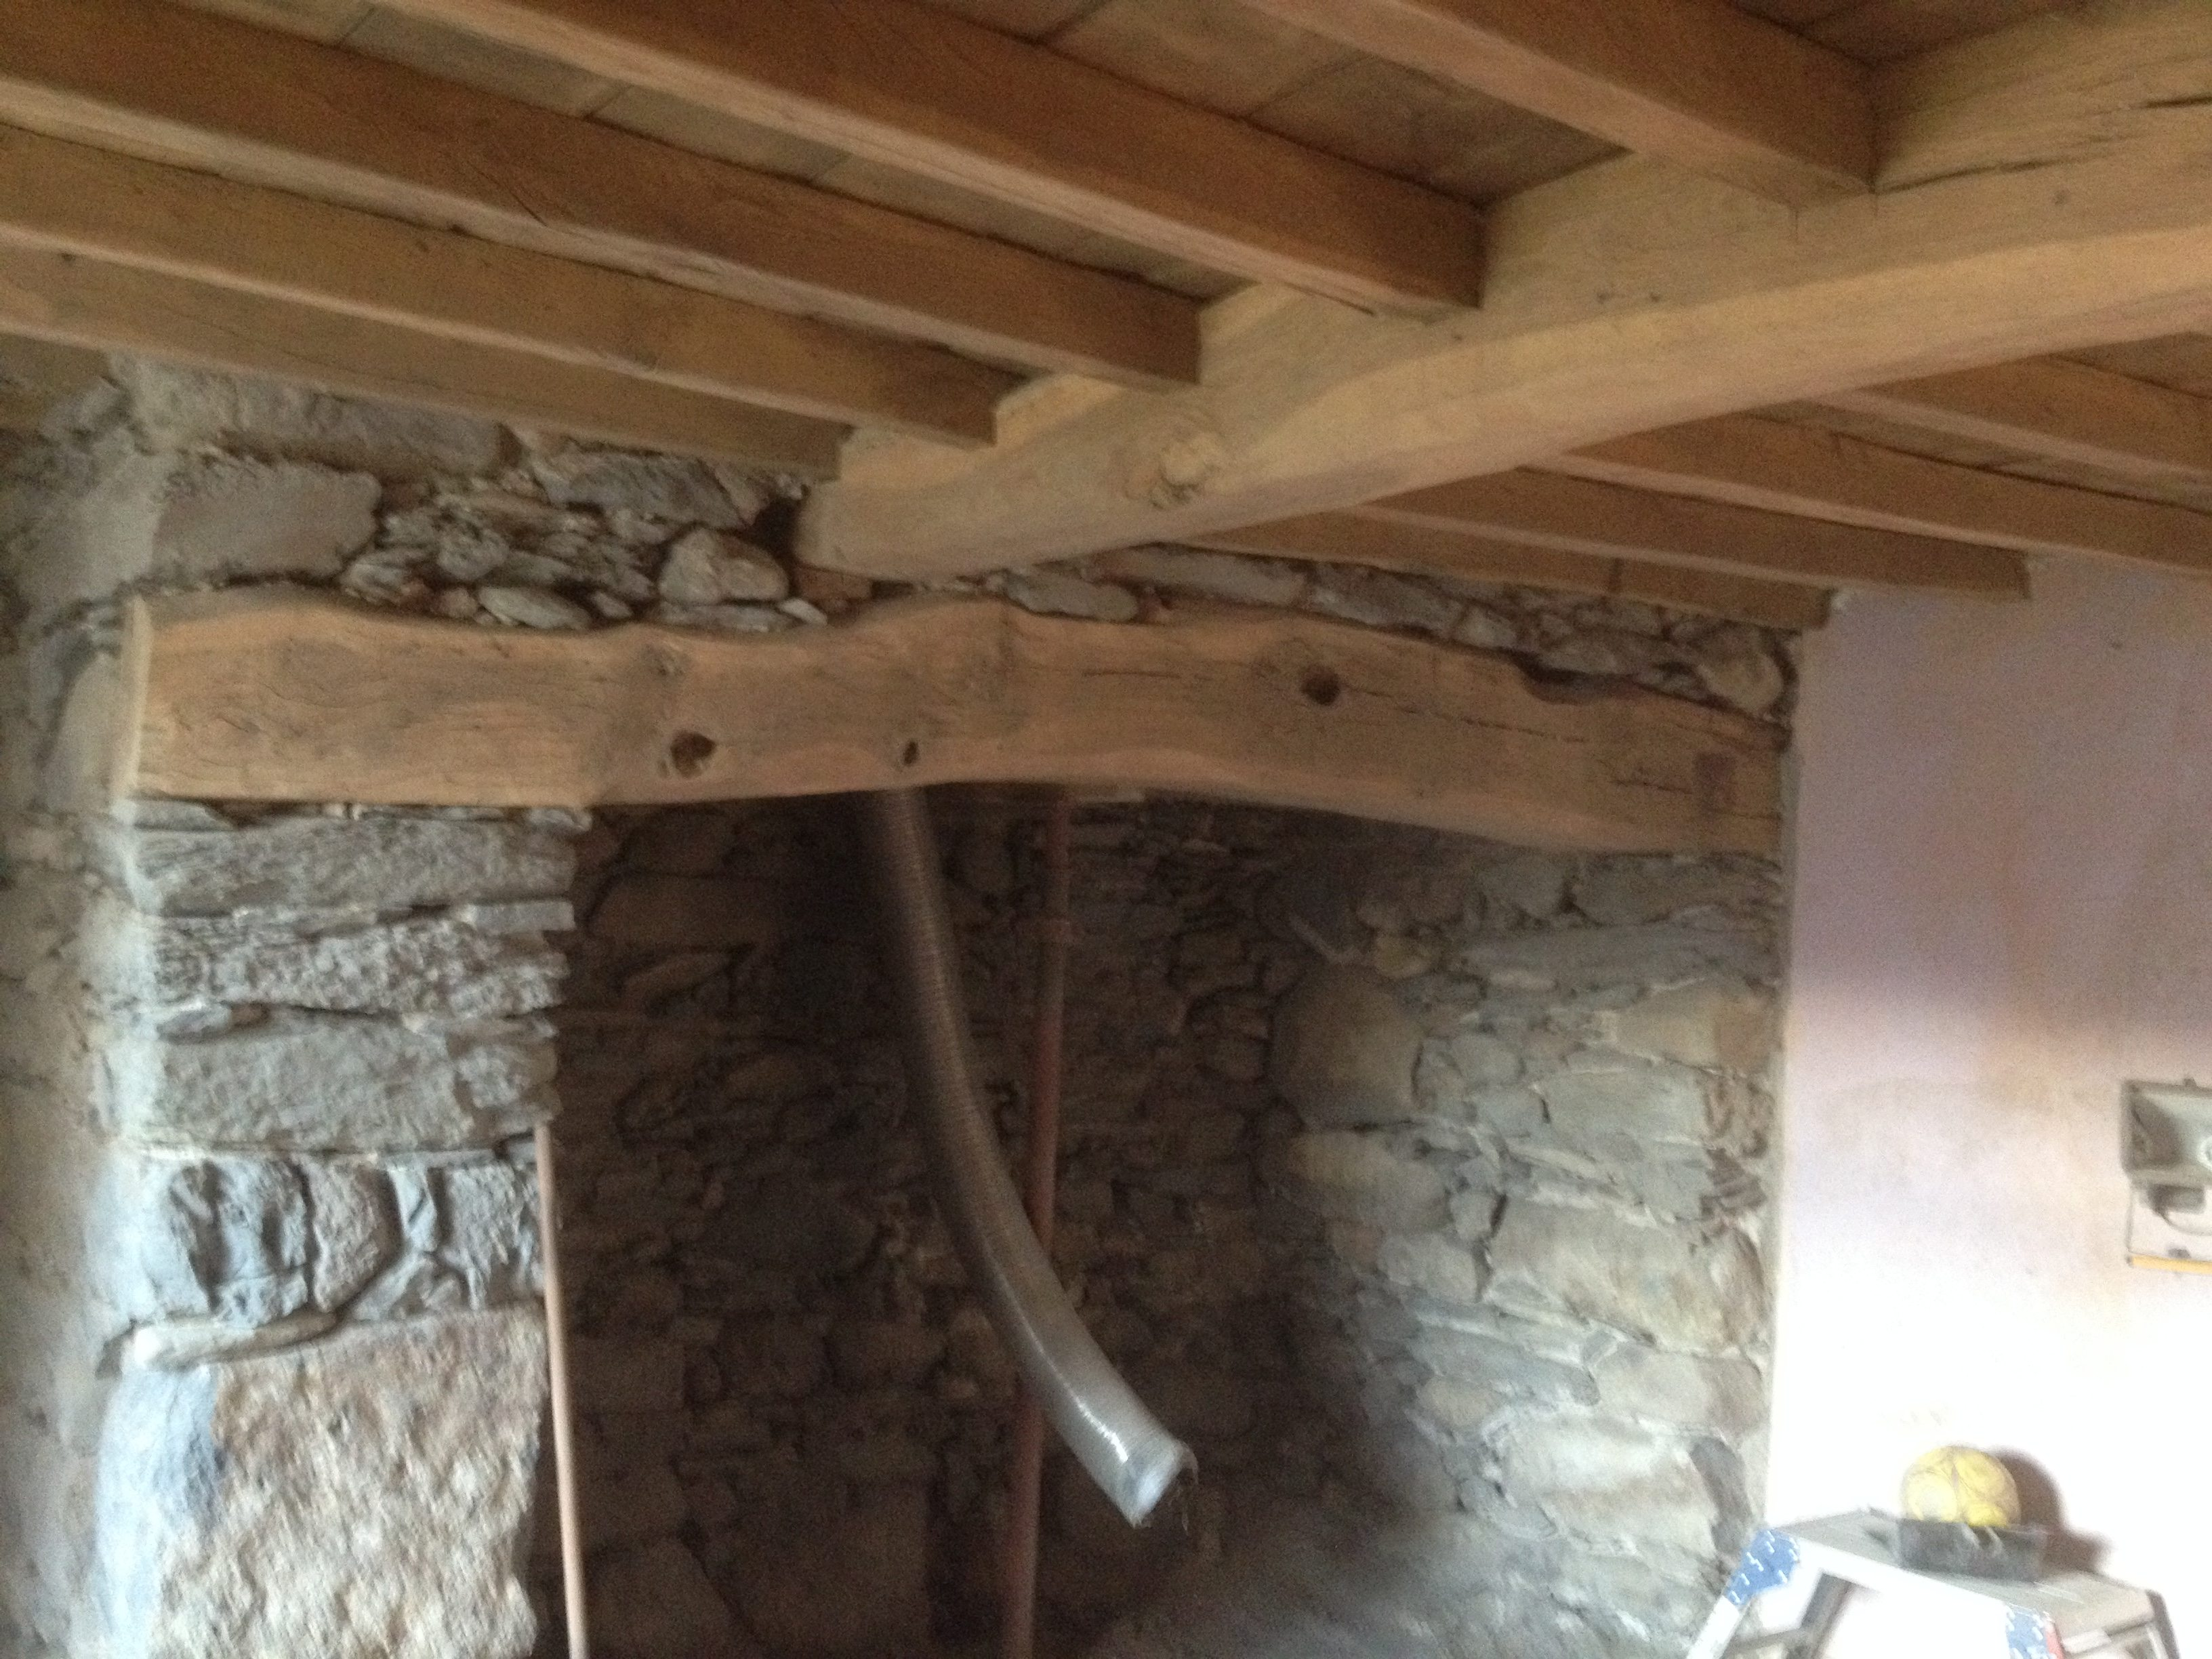 Wooden Beams Cleaning And Paint Removal Sandblasting